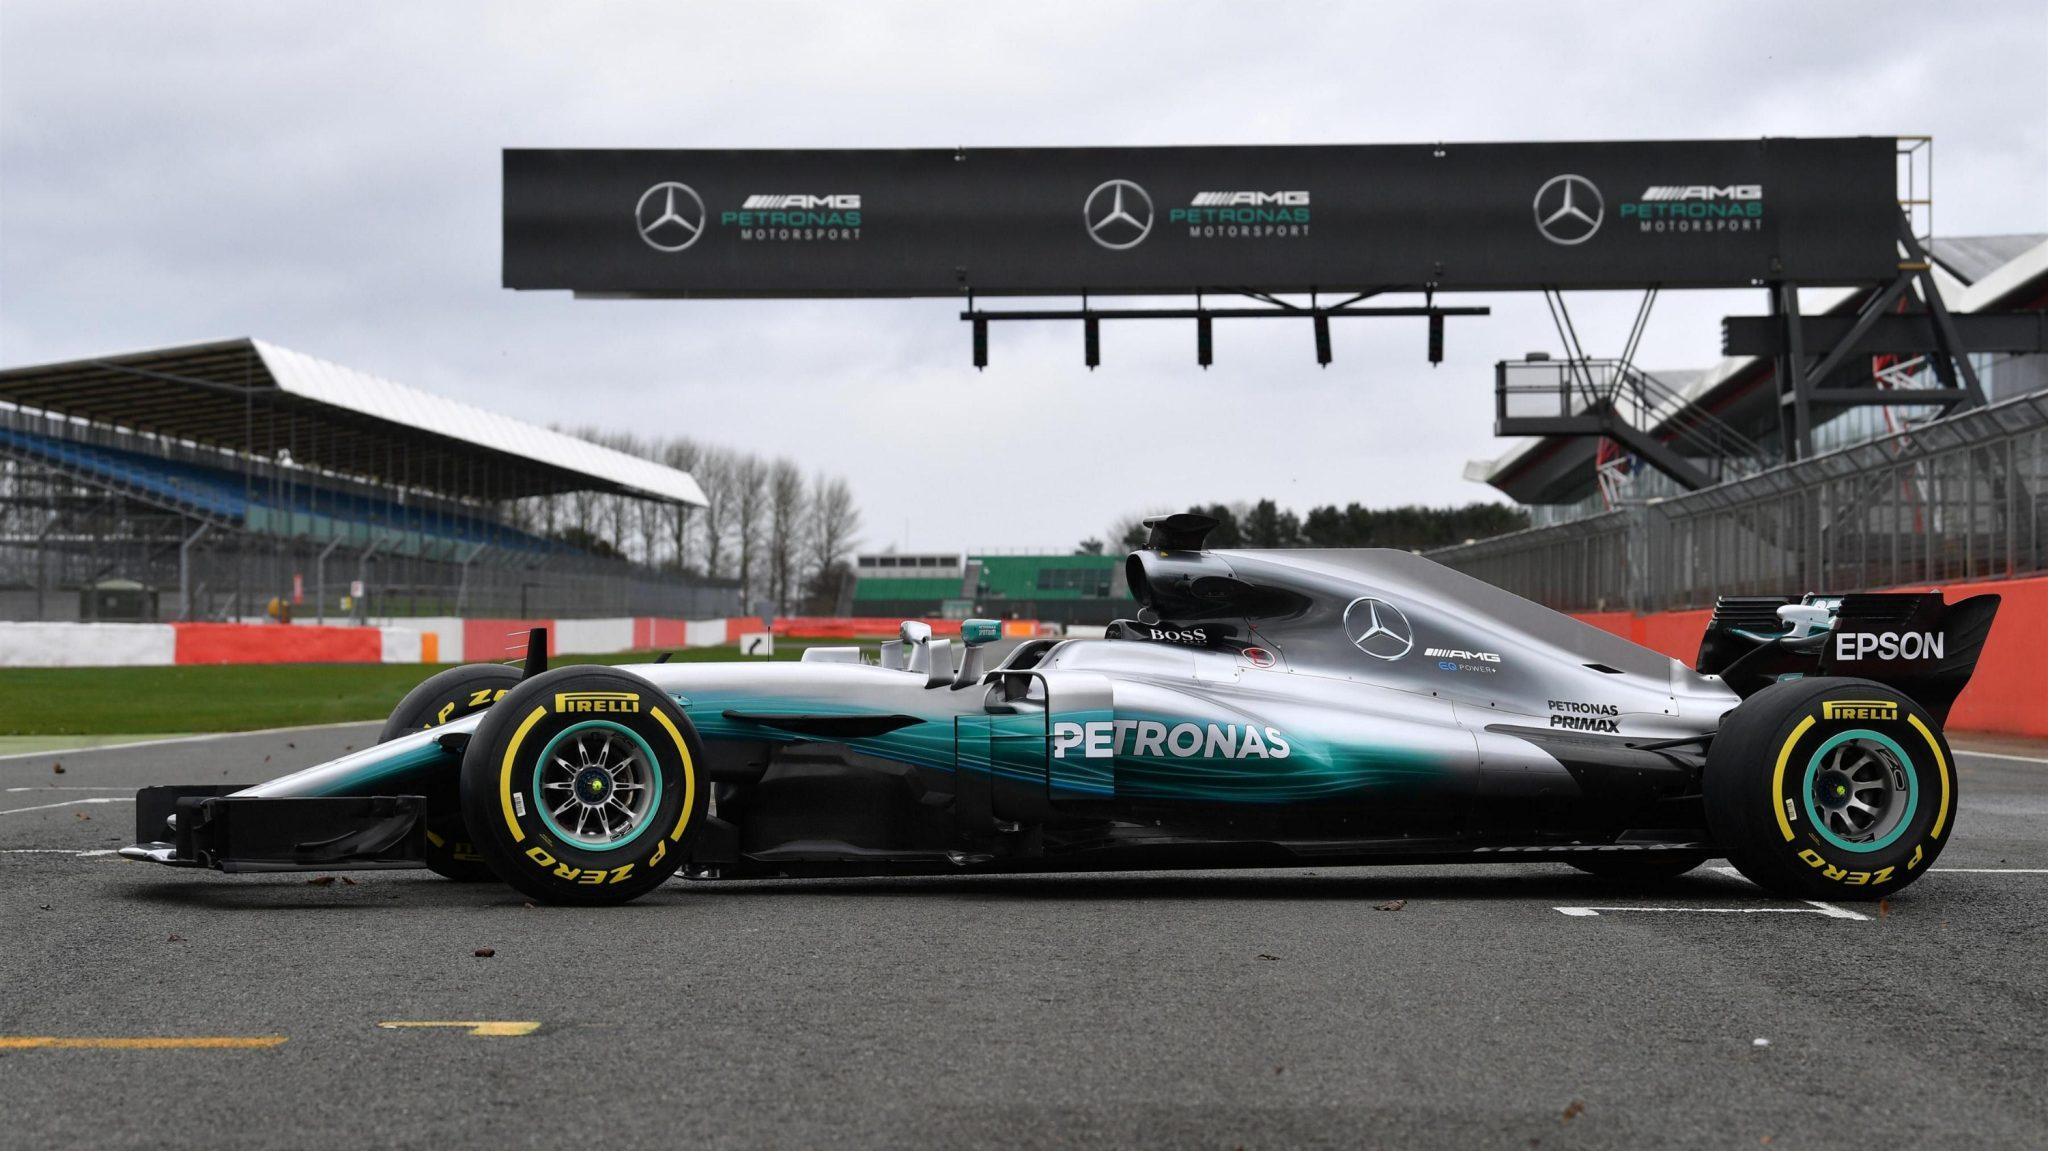 Mercedes Benz W08 Laptimes Specs Performance Data HD Wallpapers Download free images and photos [musssic.tk]